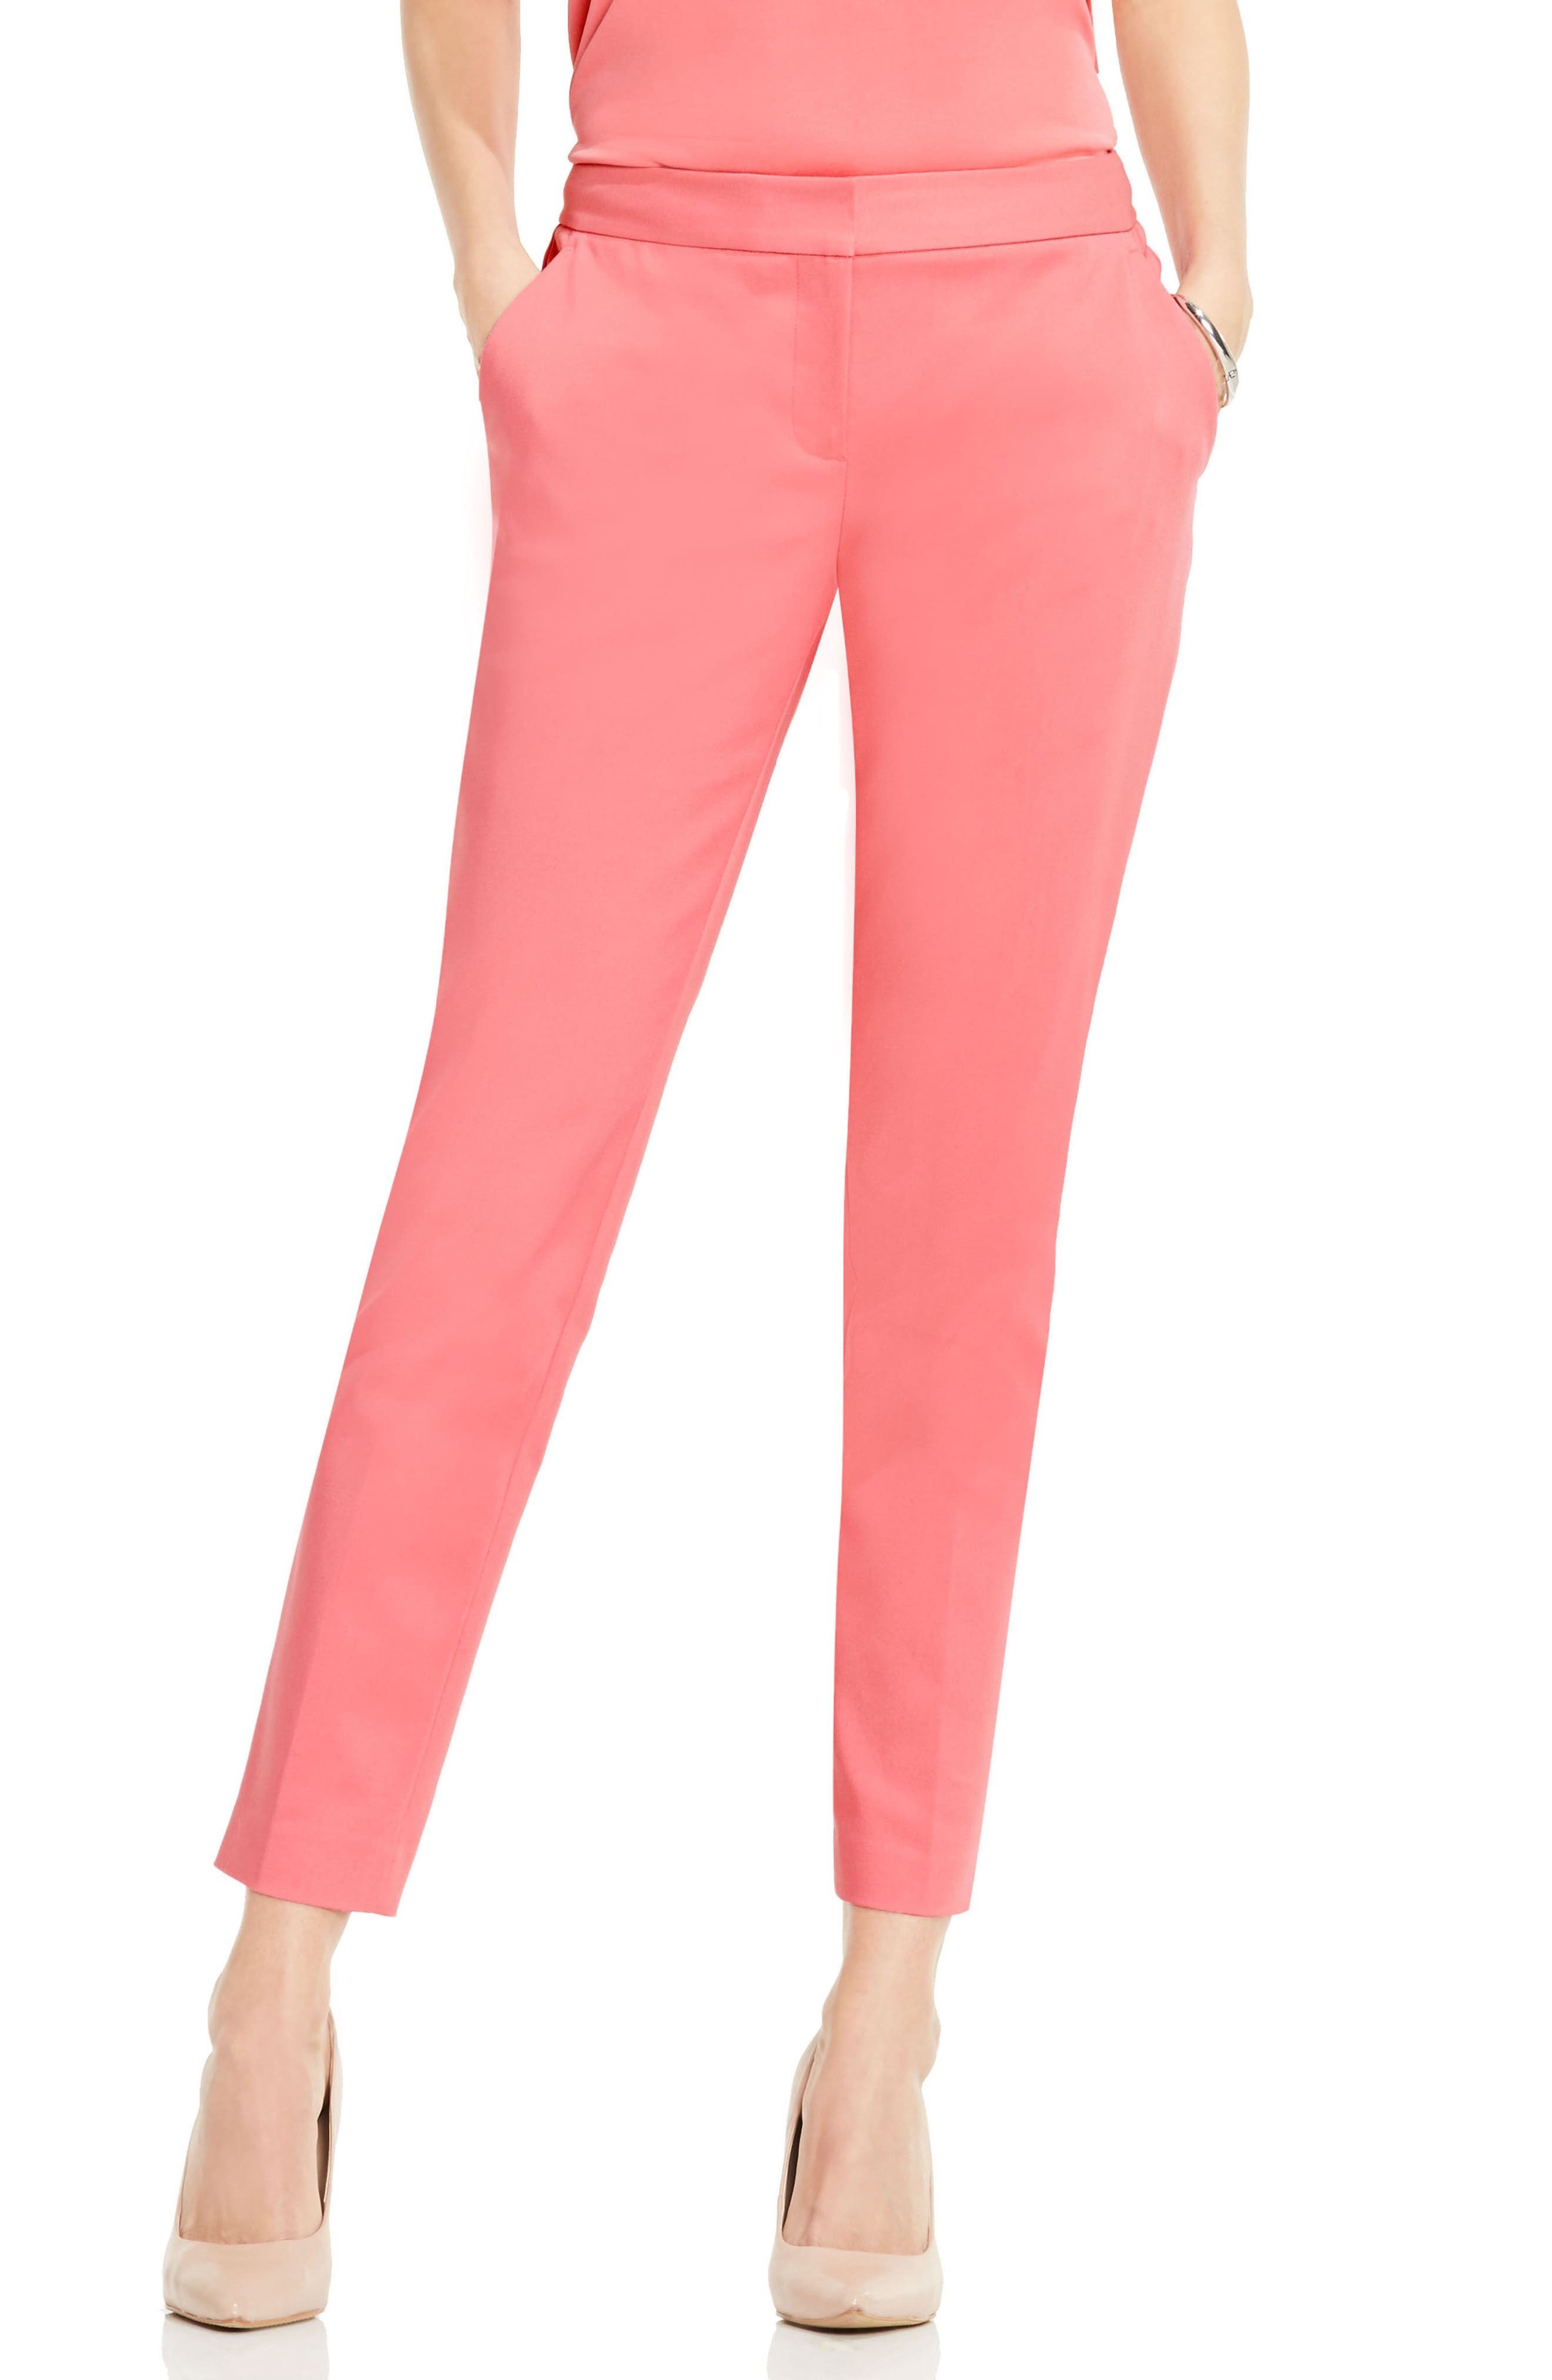 Alternate Image 1 Selected - Vince Camuto Slim Ankle Pants